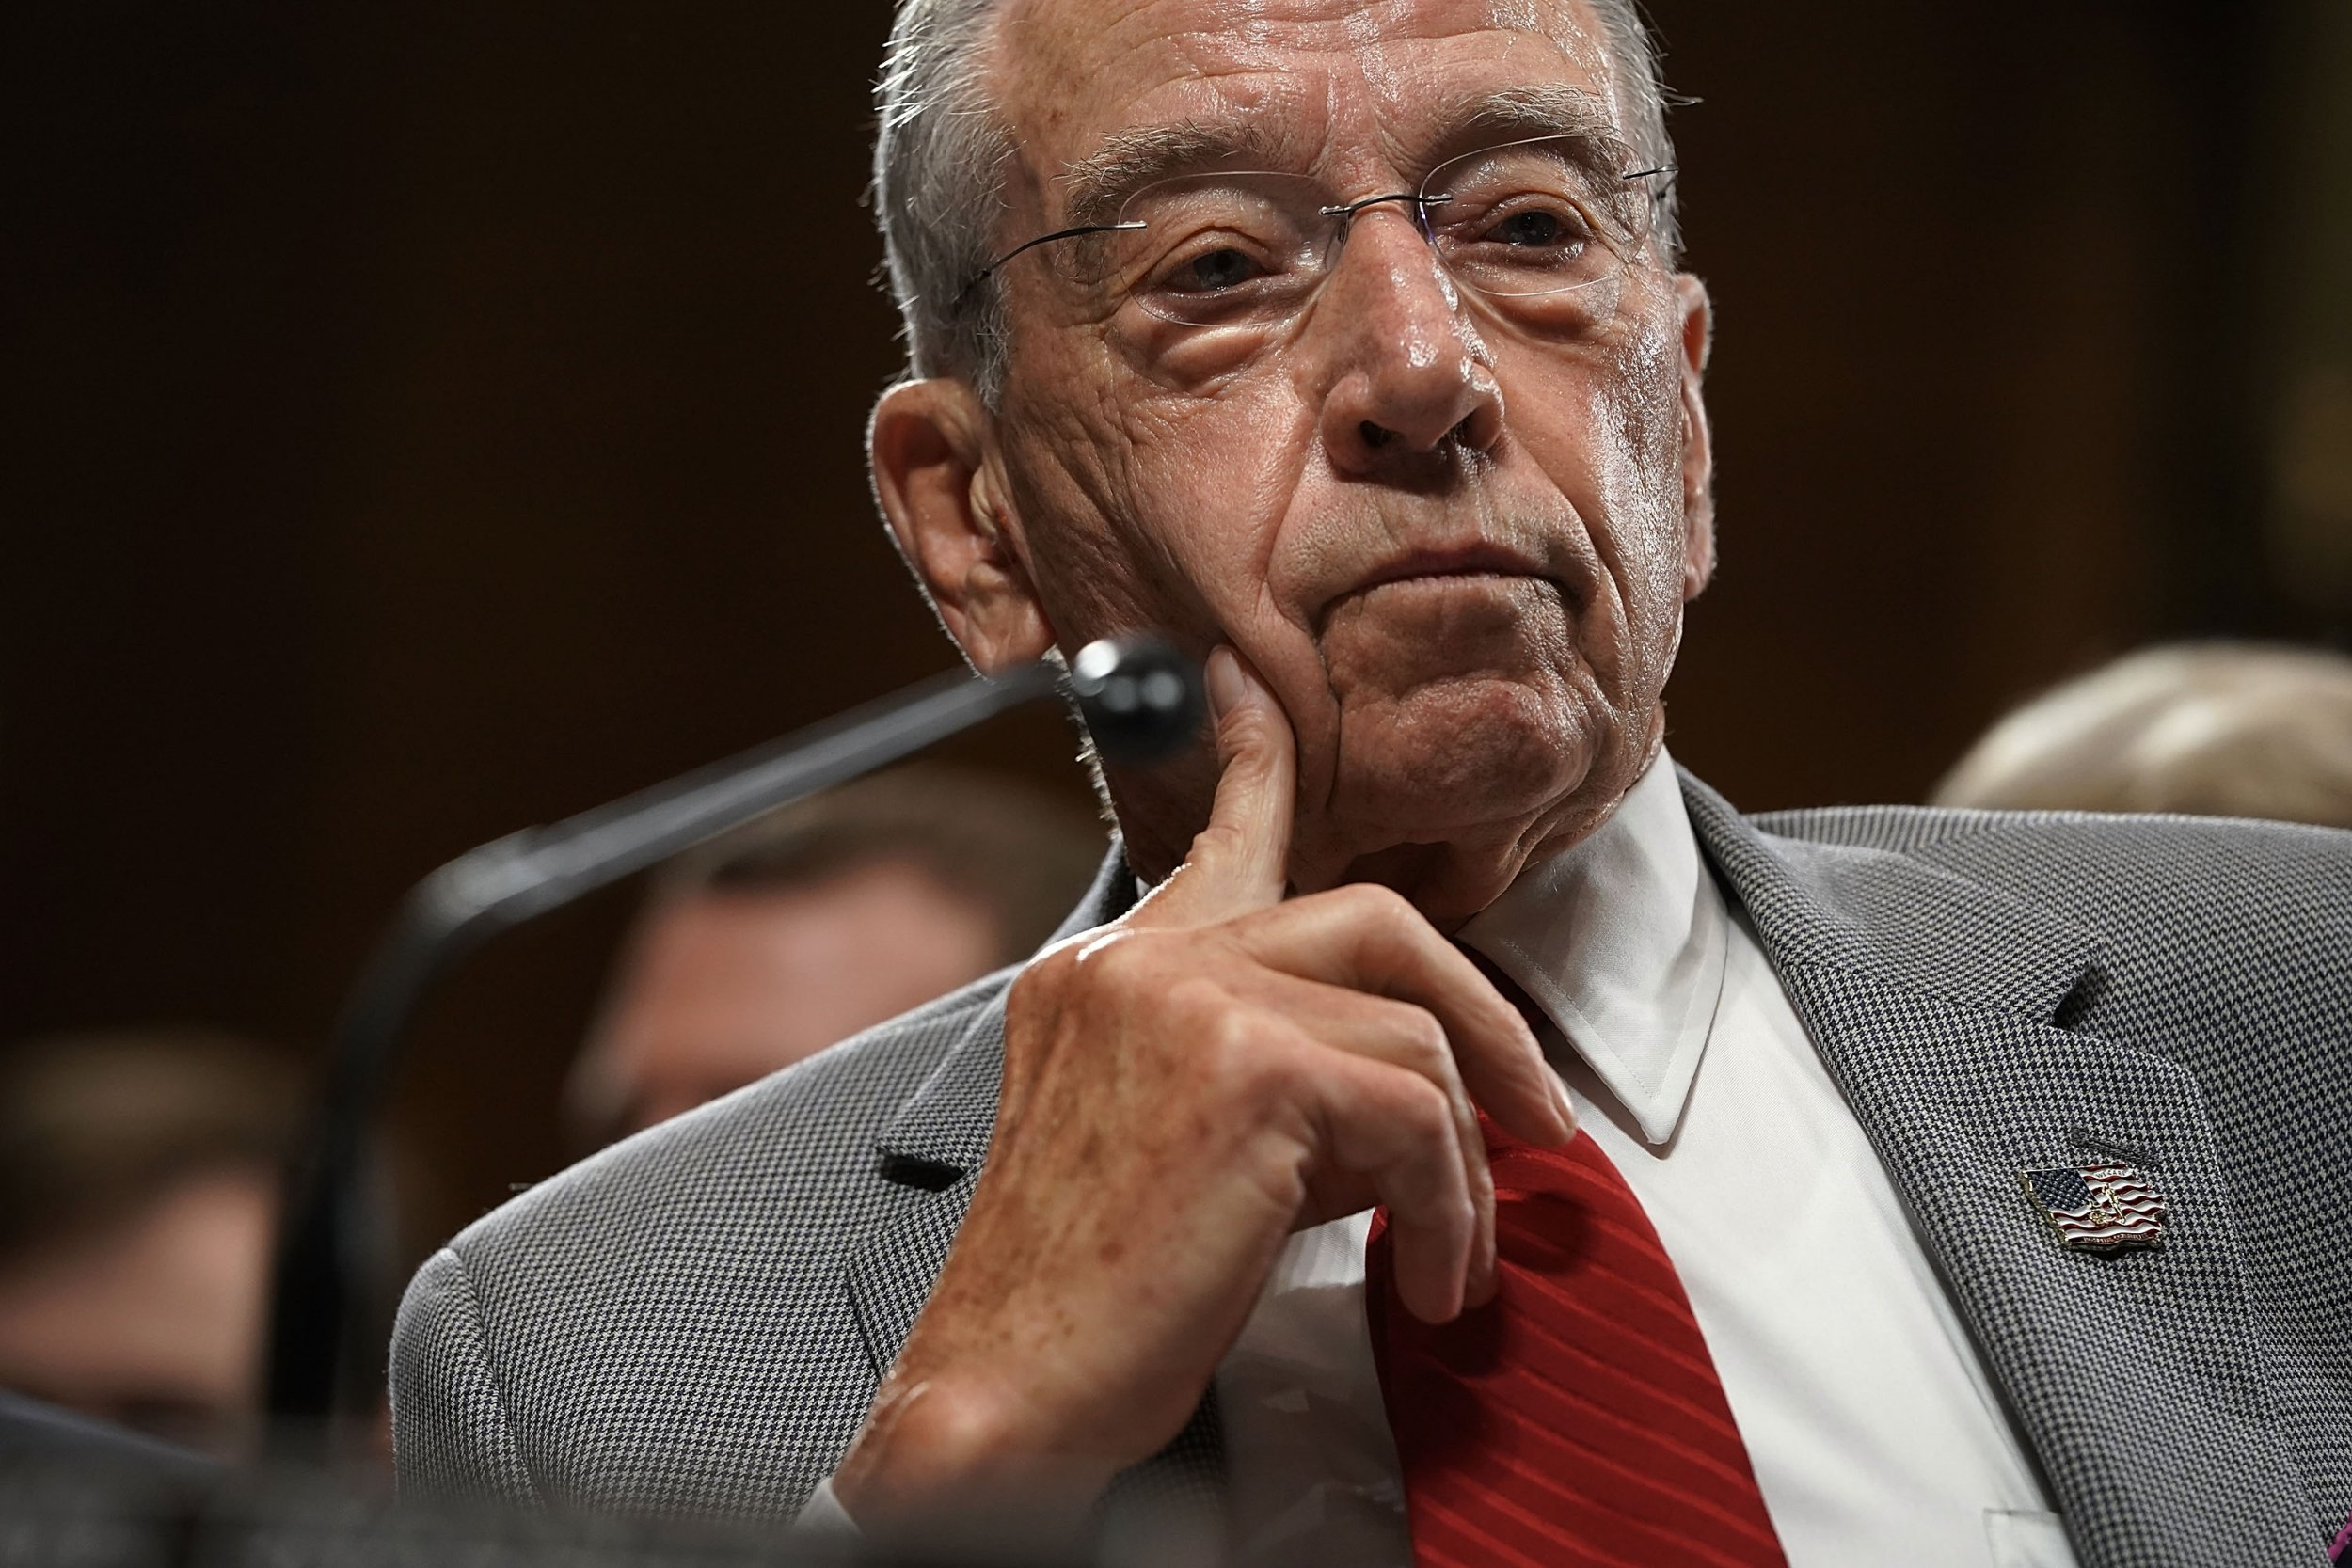 garrett ventry chuck grassley resign kavanaugh sexual harassment